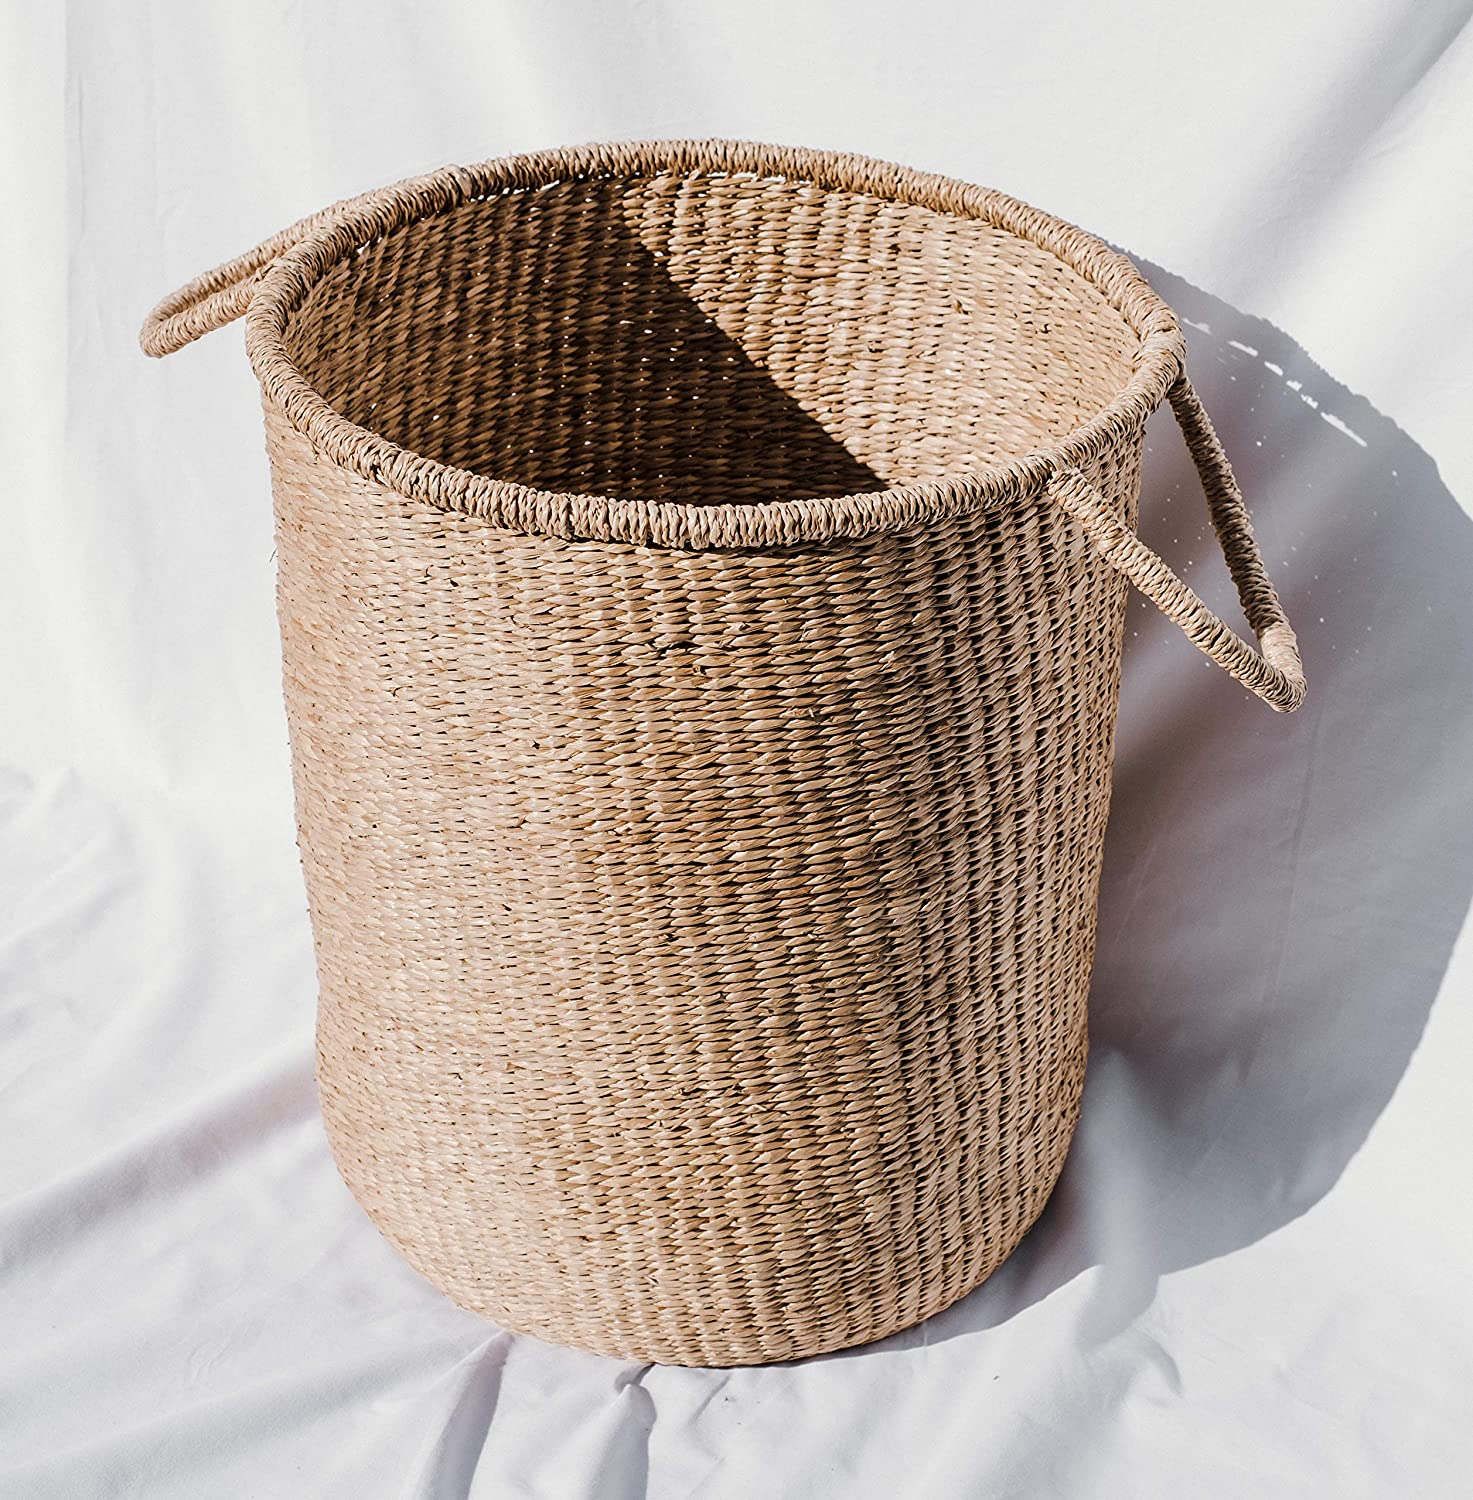 The Jolie Market Cannes Storage Basket- Bohemian Seagrass Wicker Round Storage Basket with Handles- Home Decor, Storage, Housewarming Gift, 100% Eco-Friendly